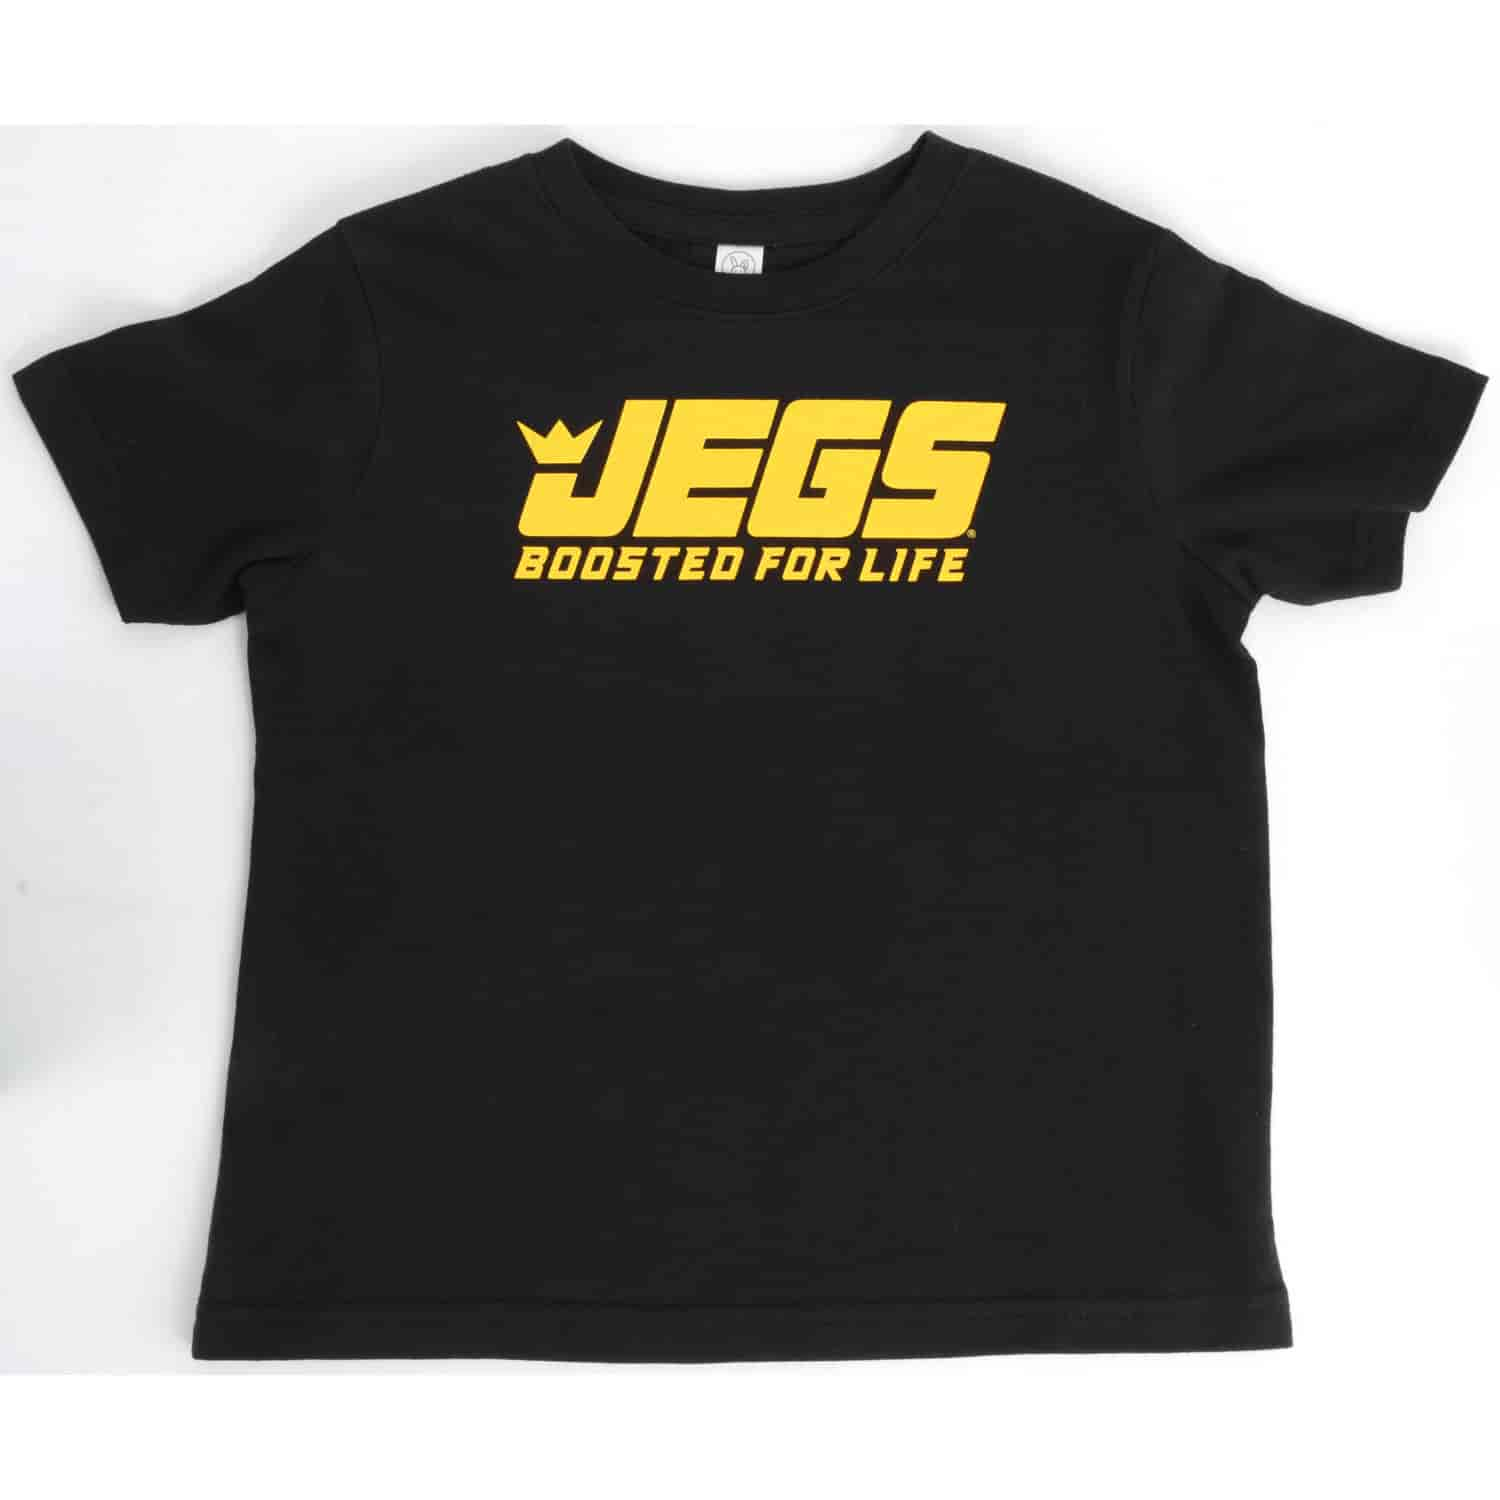 JEGS Apparel and Collectibles 16031